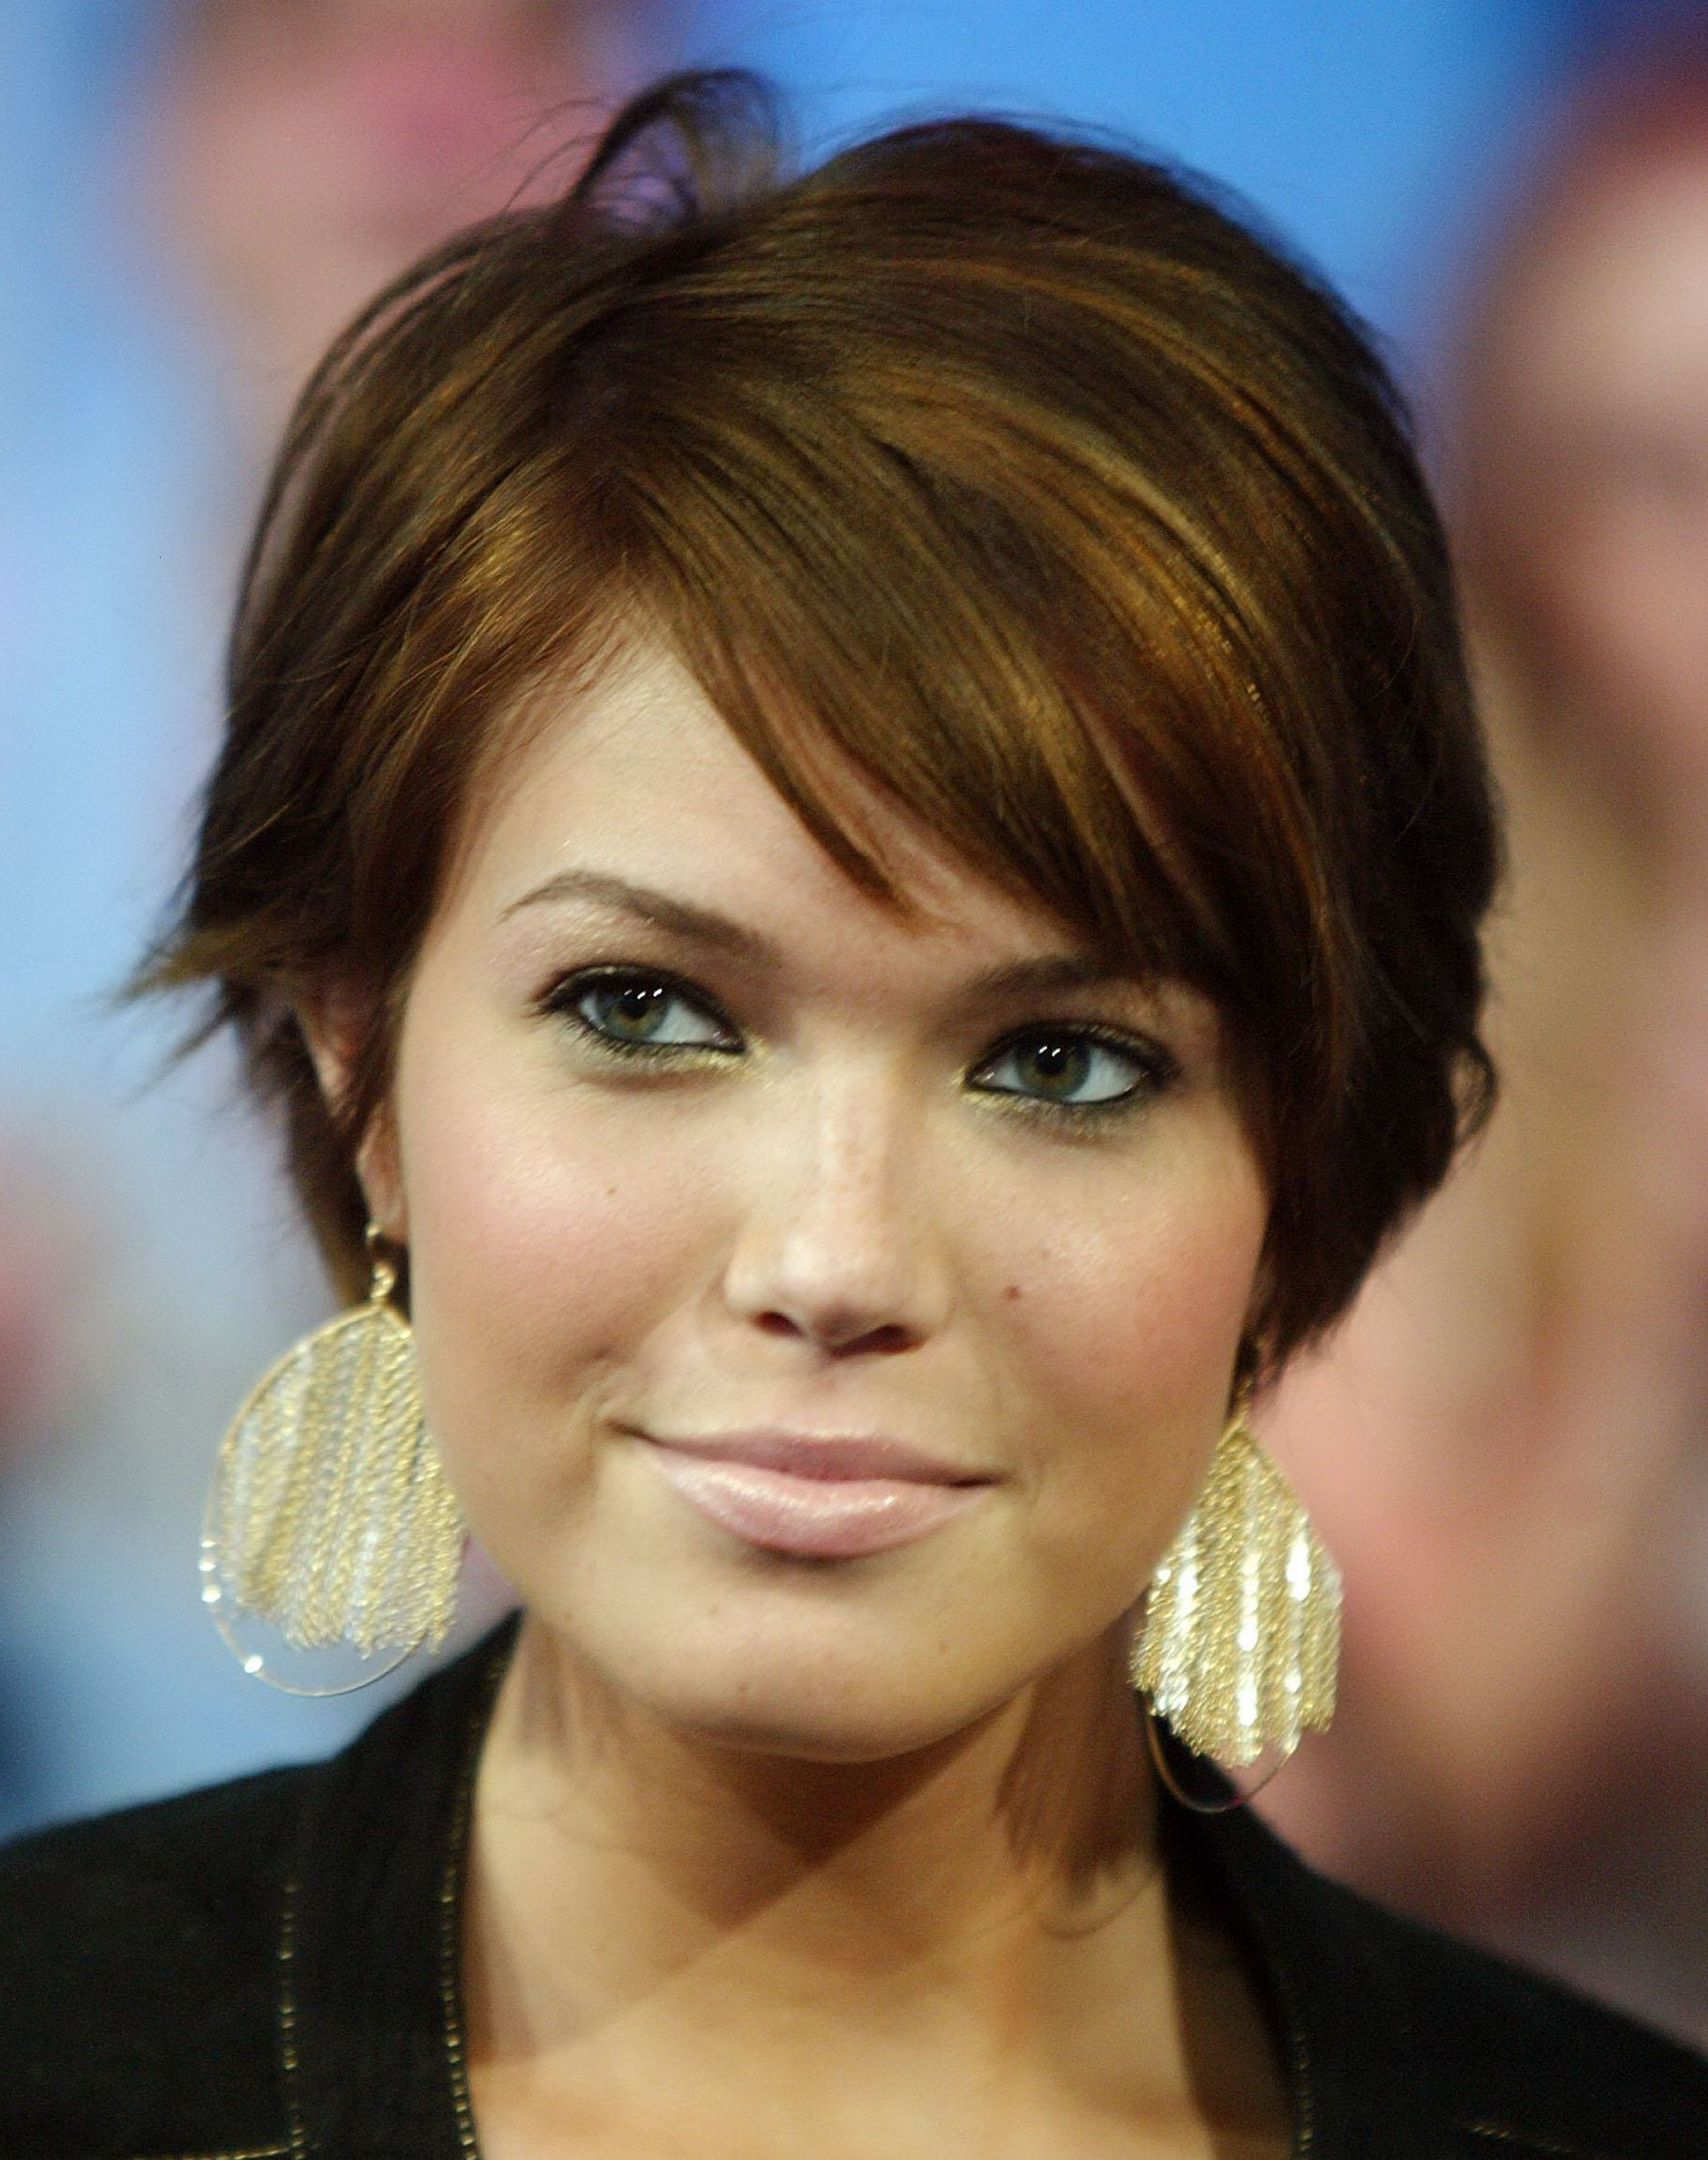 Hairstyles For Older Women With Long Faces Short Hairstyles For Inside Long Face Short Haircuts (View 7 of 25)